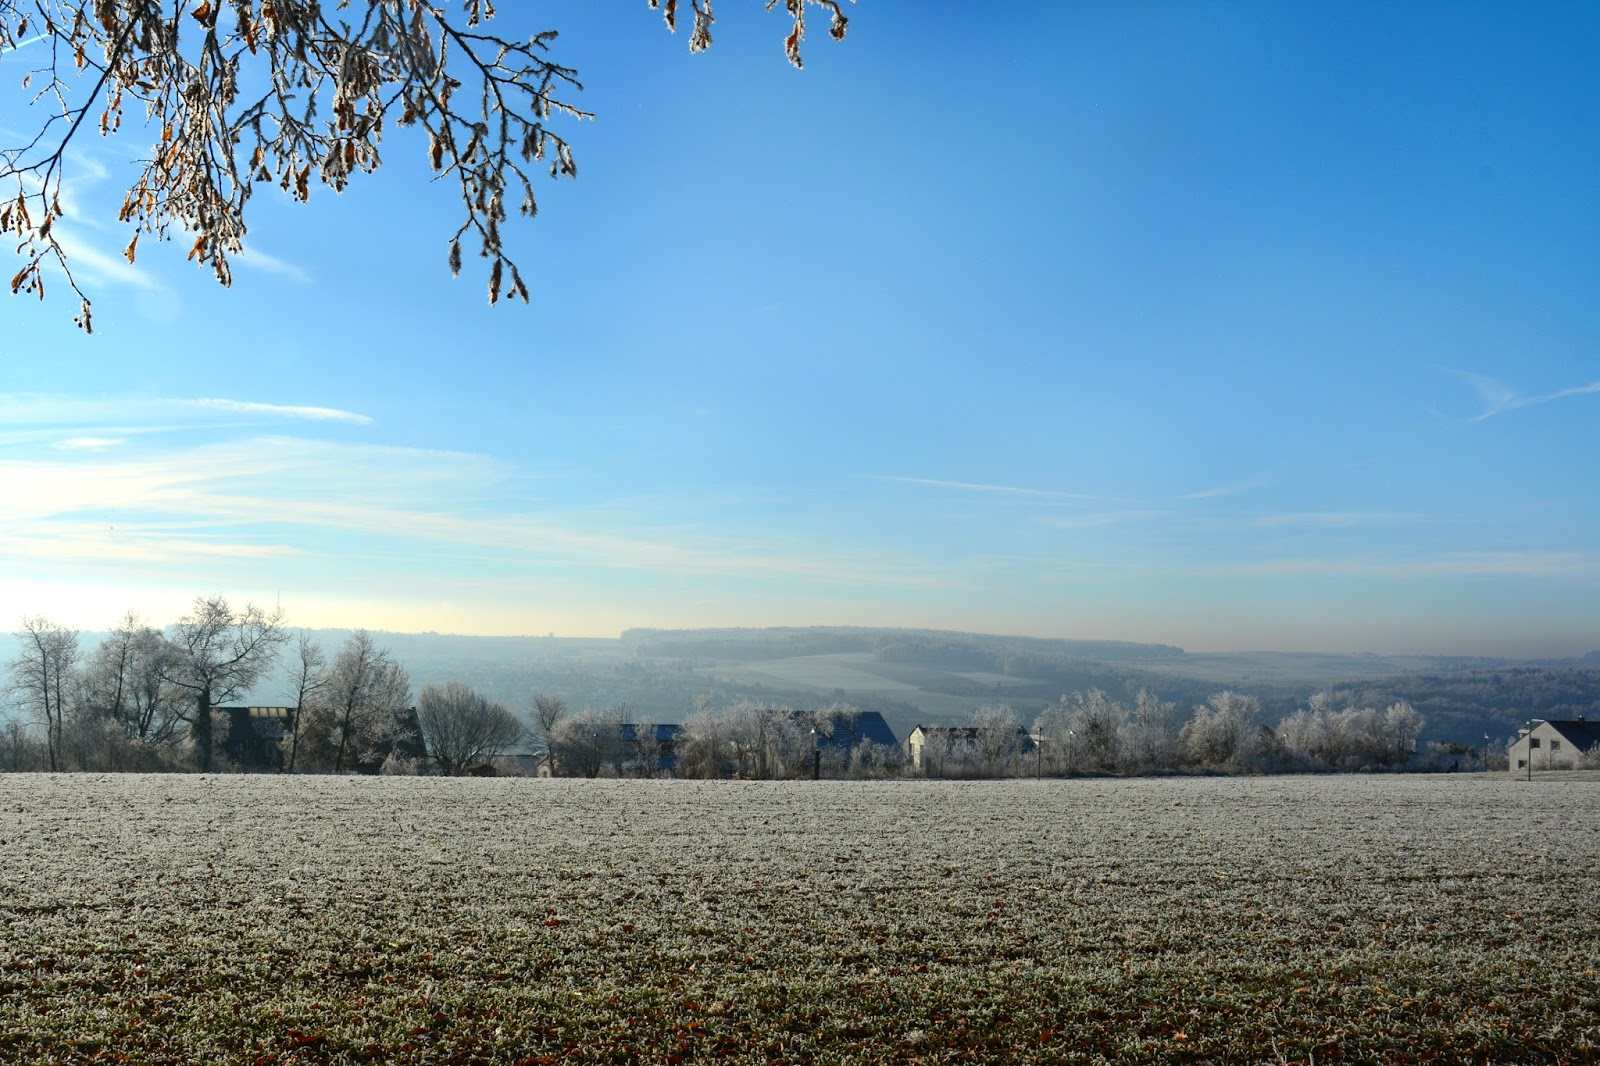 View of Ulm from Eselsberg with a blue sky